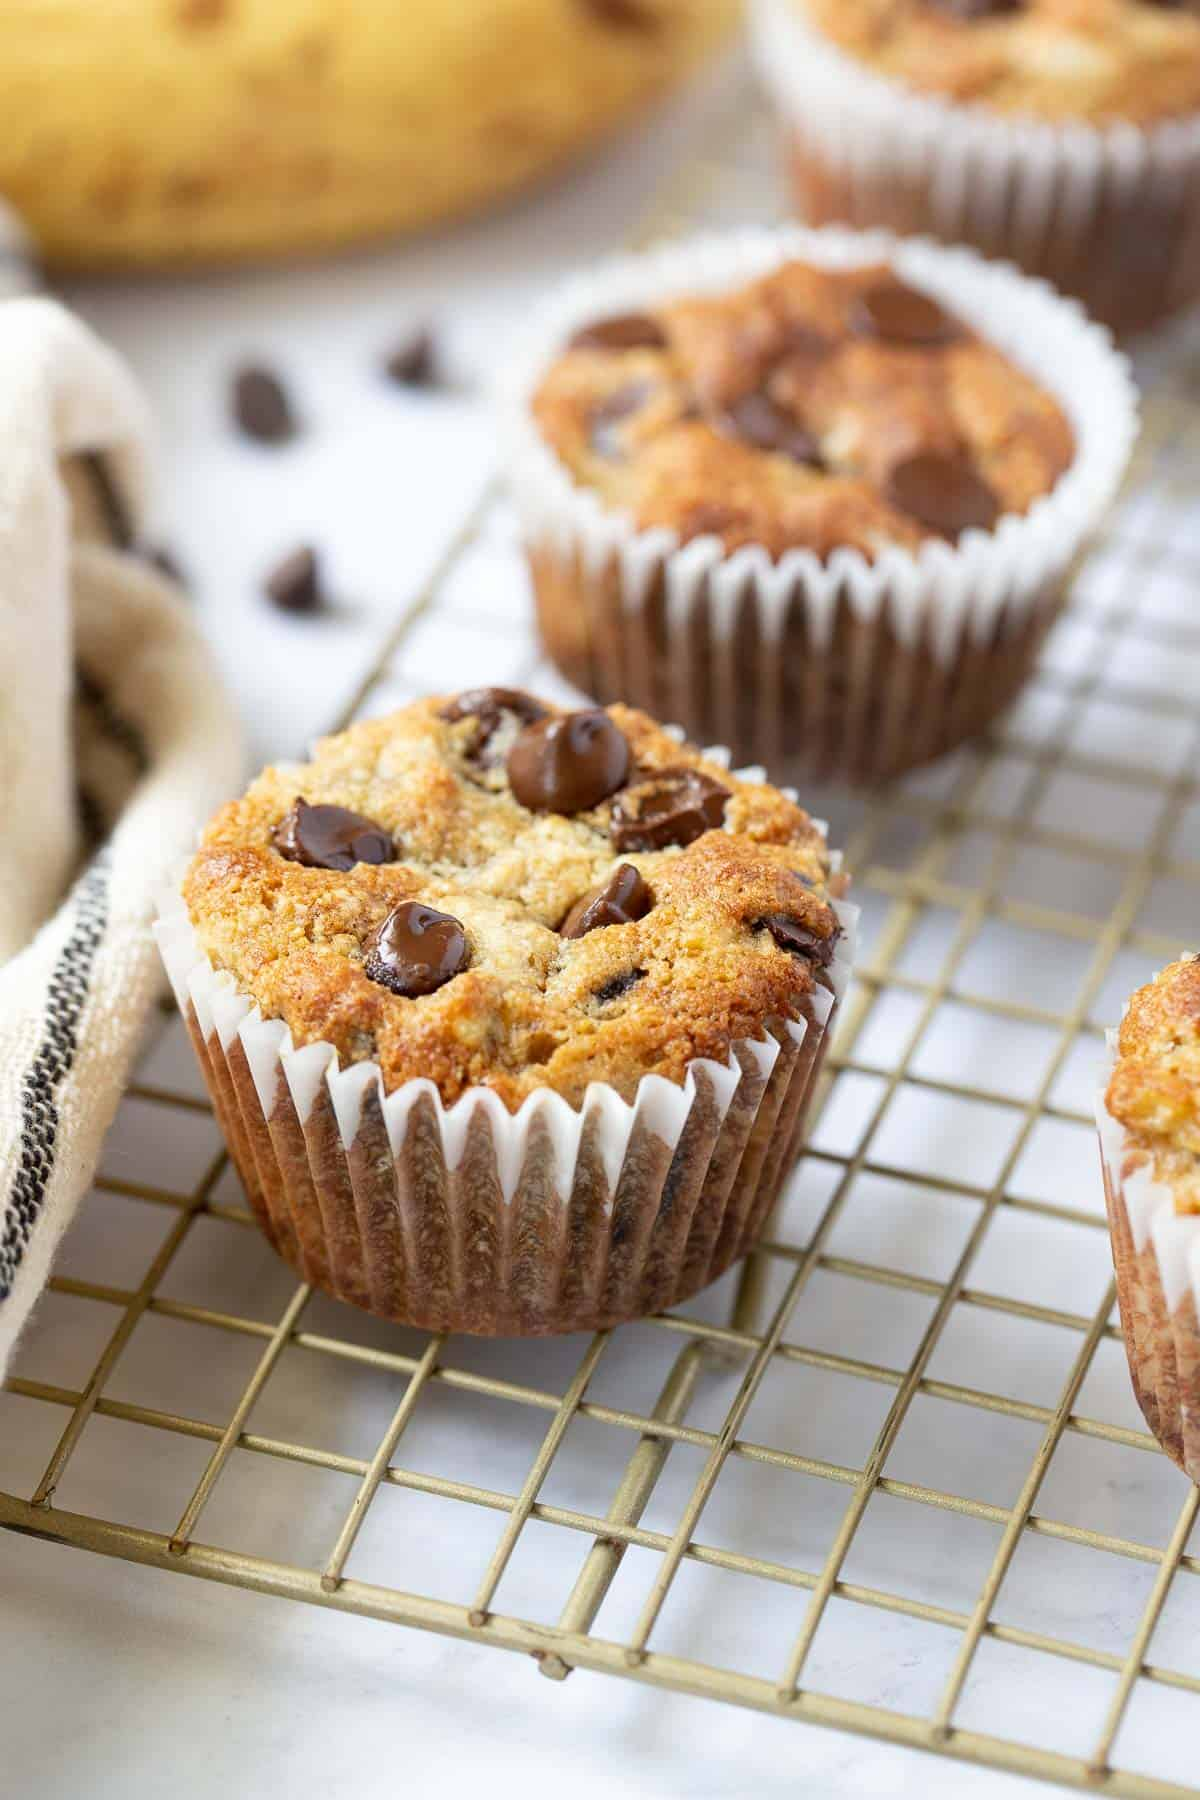 Close up of banana muffin with chocolate chips on top.